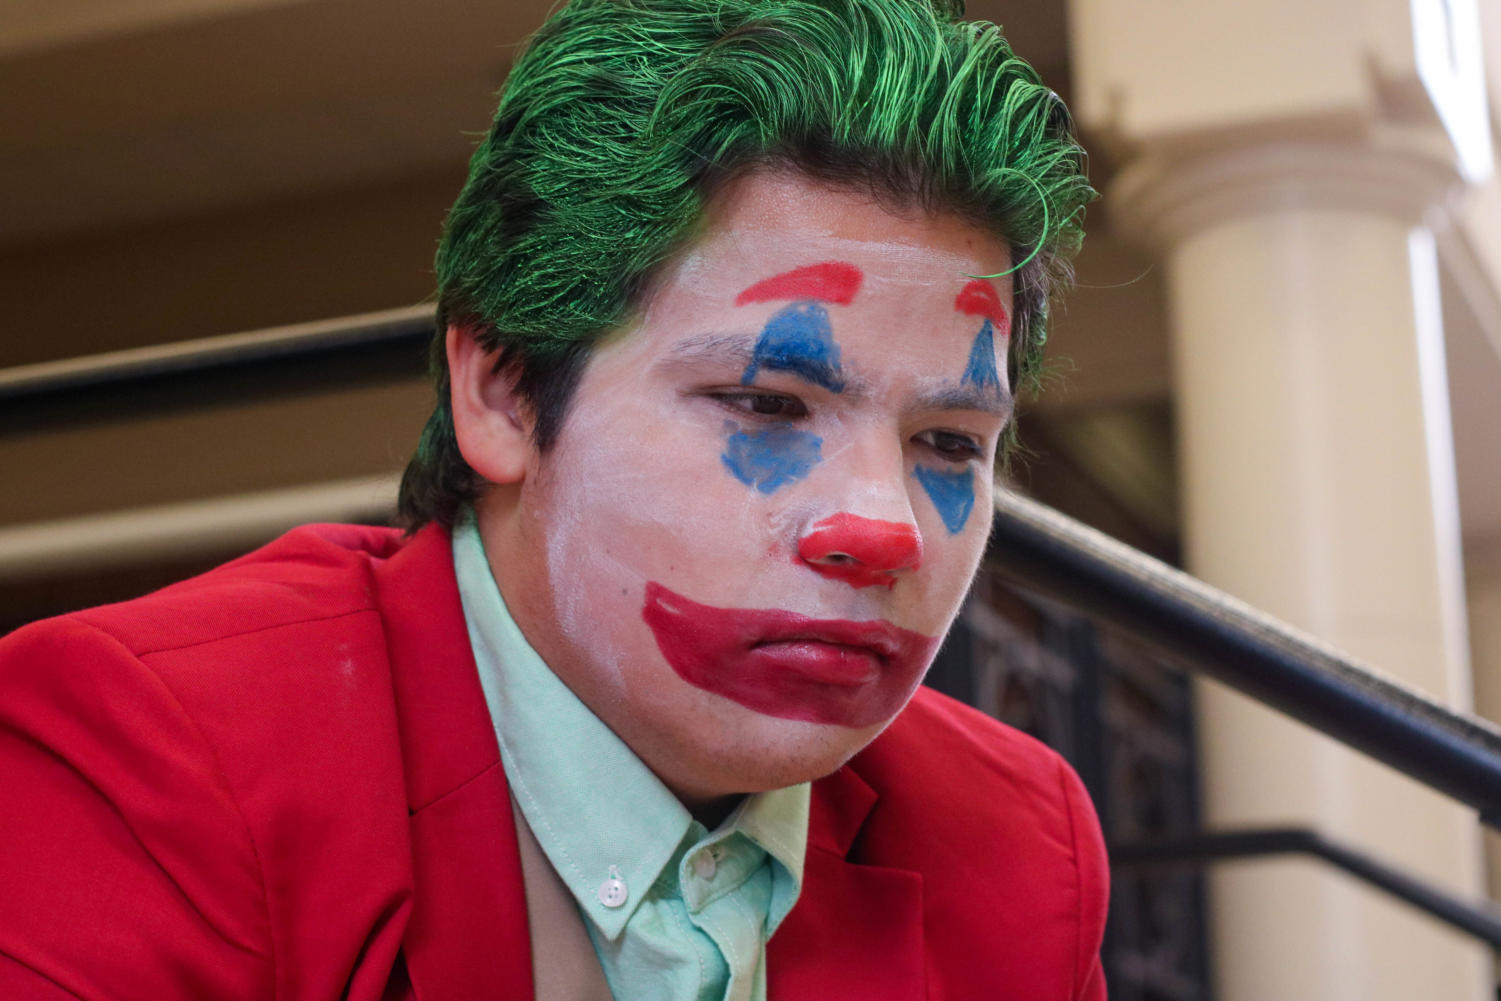 """Senior Erland Merwin poses in his joker costume on the steps to the Auditorium. """"We live in a society,"""" Merwin said, quoting one of the Joker's most famous and meme-ified lines. In this column, writer Maddie Moats highlights the many reasons for which she claims the Halloween spirit has died."""